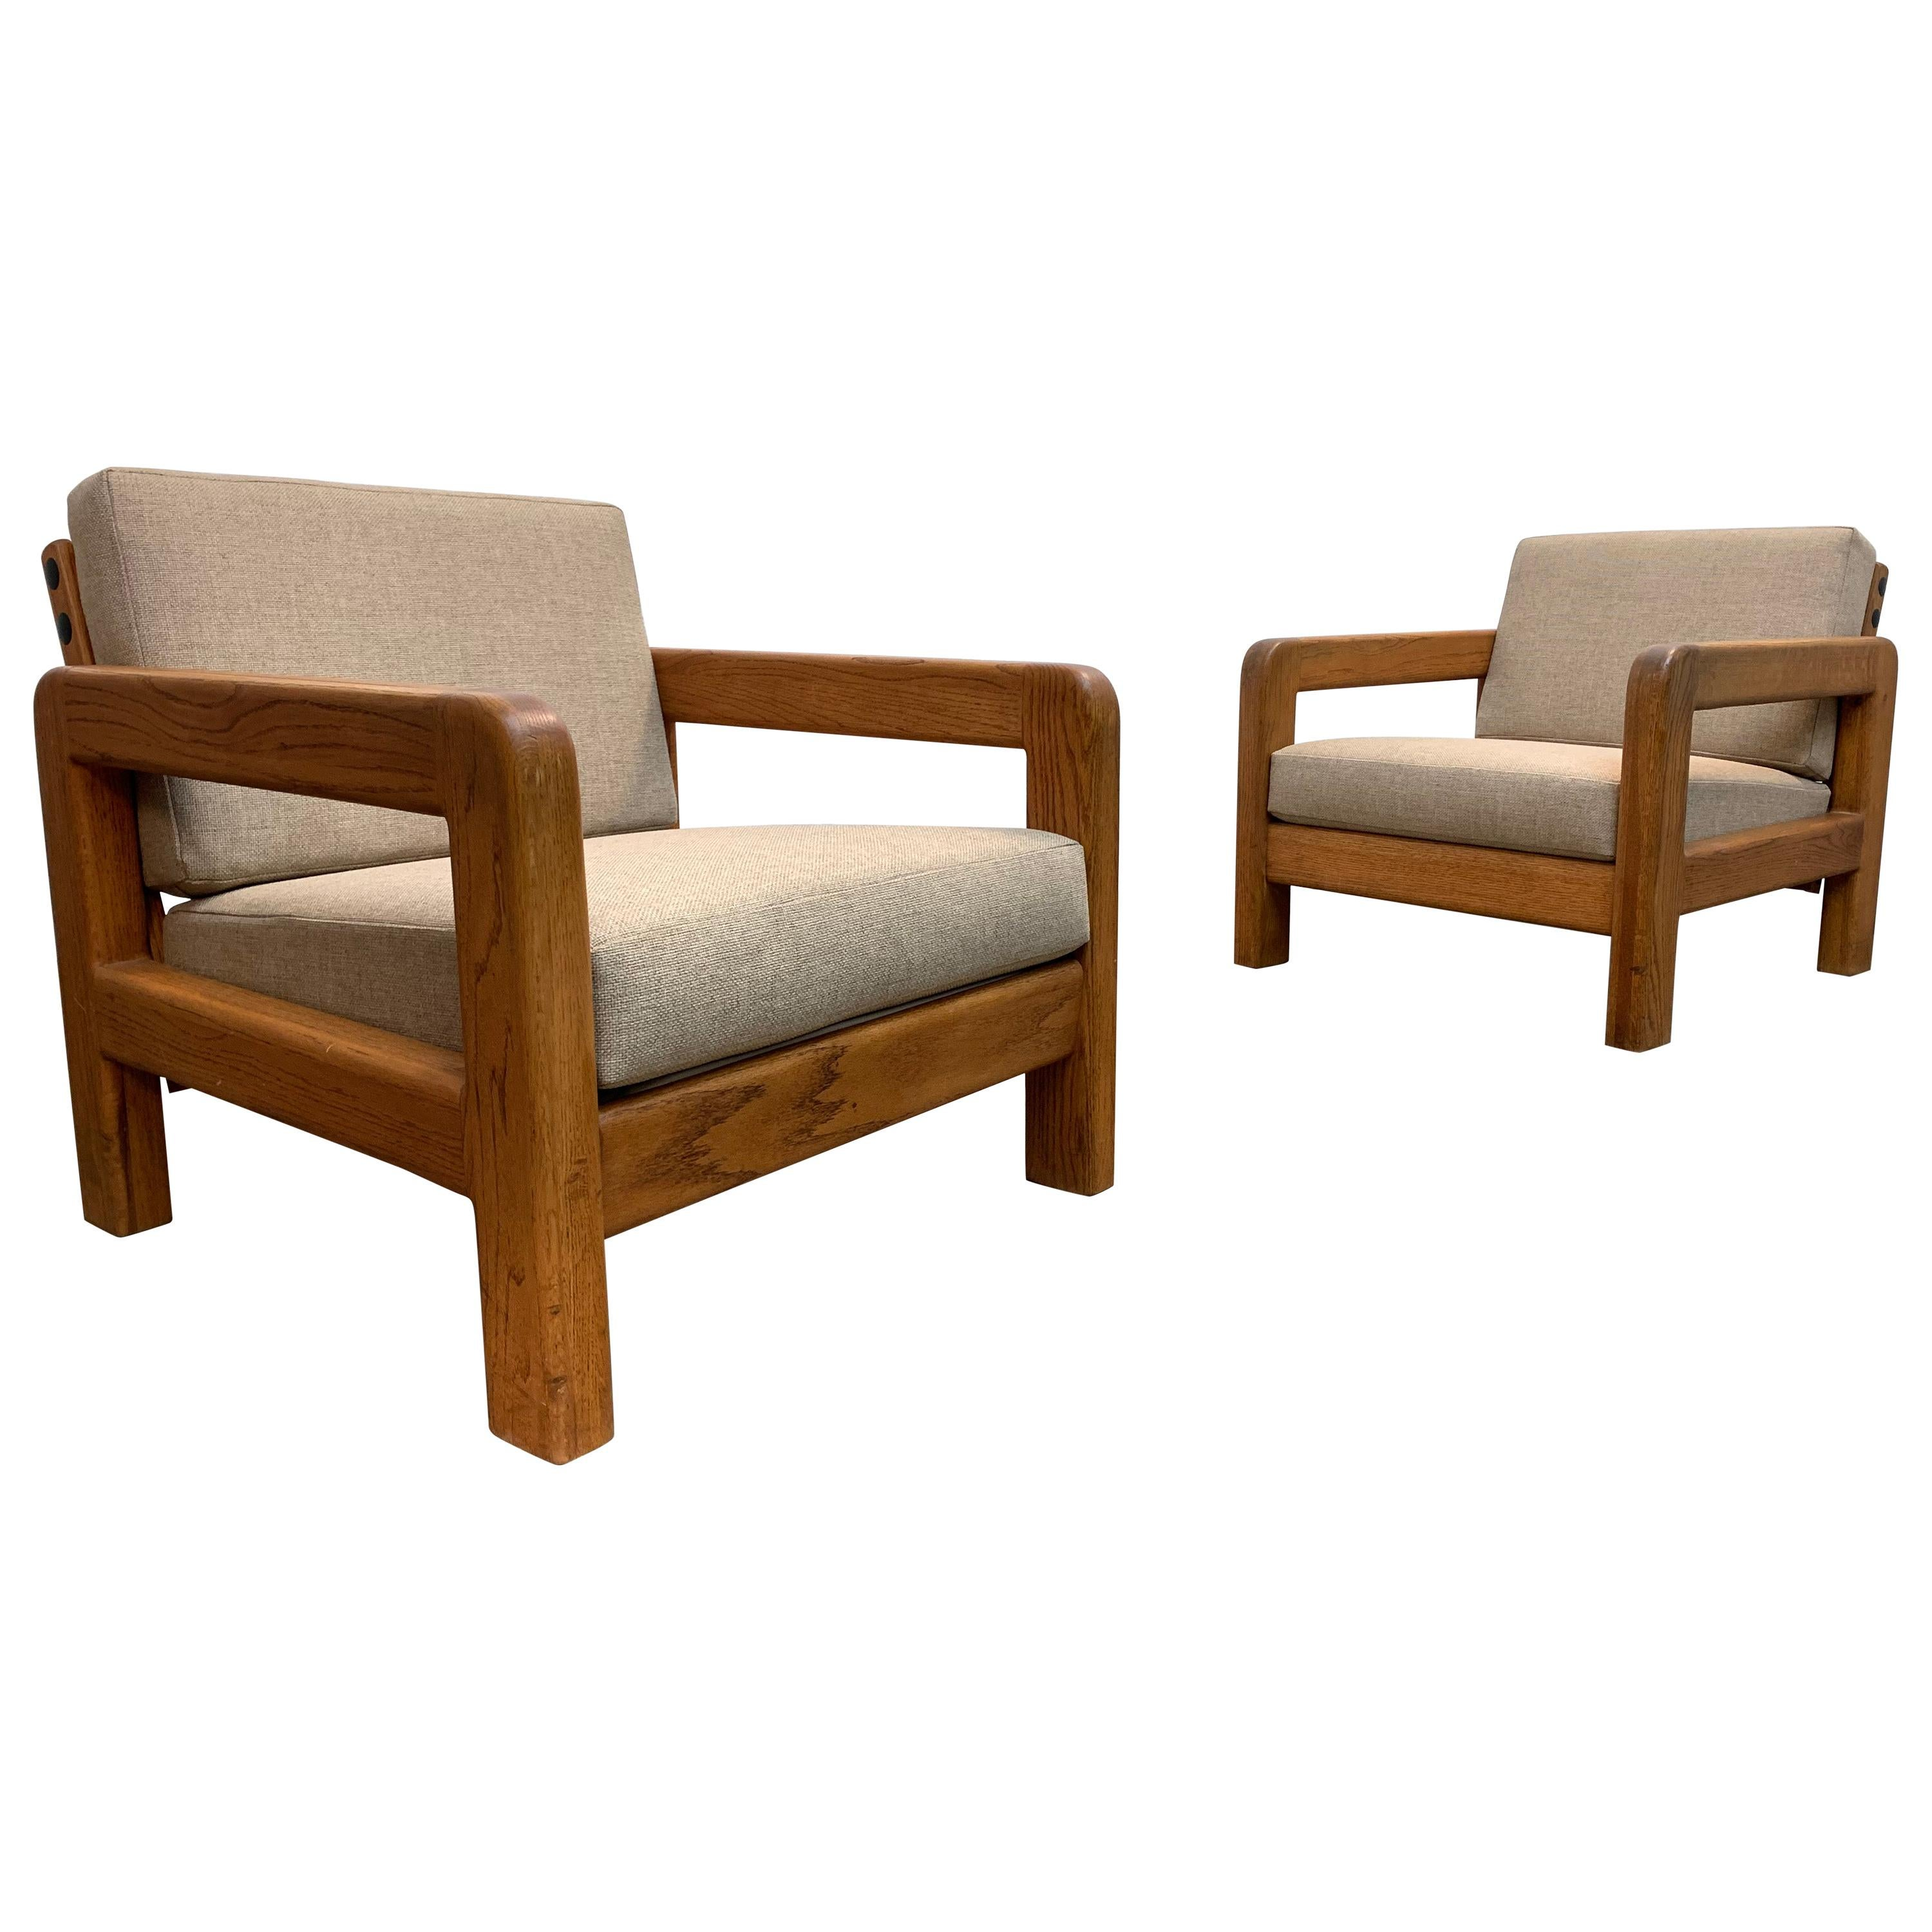 Pair of Modernist Lounge Chairs